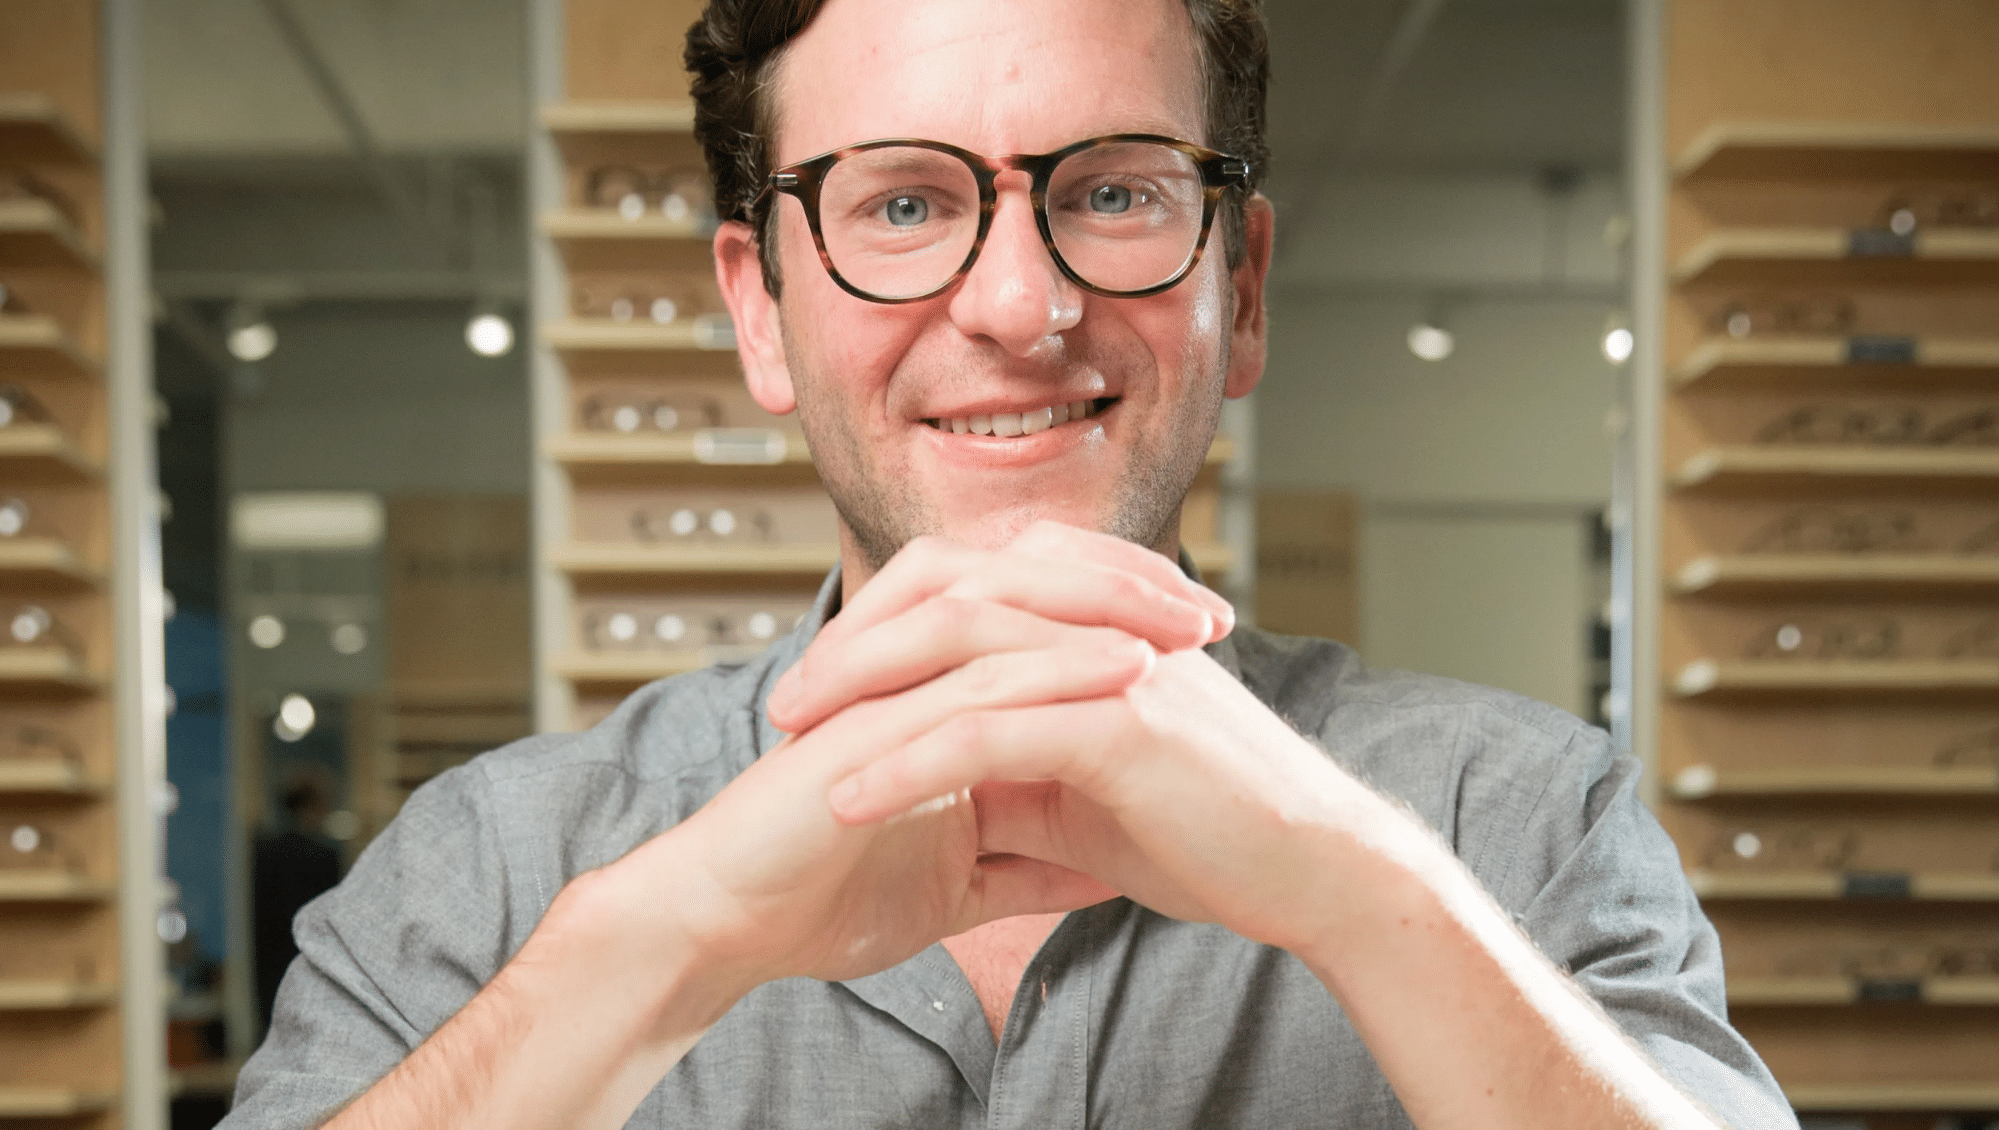 Dave Gilboa was one of four founders behind Warby Parker's launch in 2010